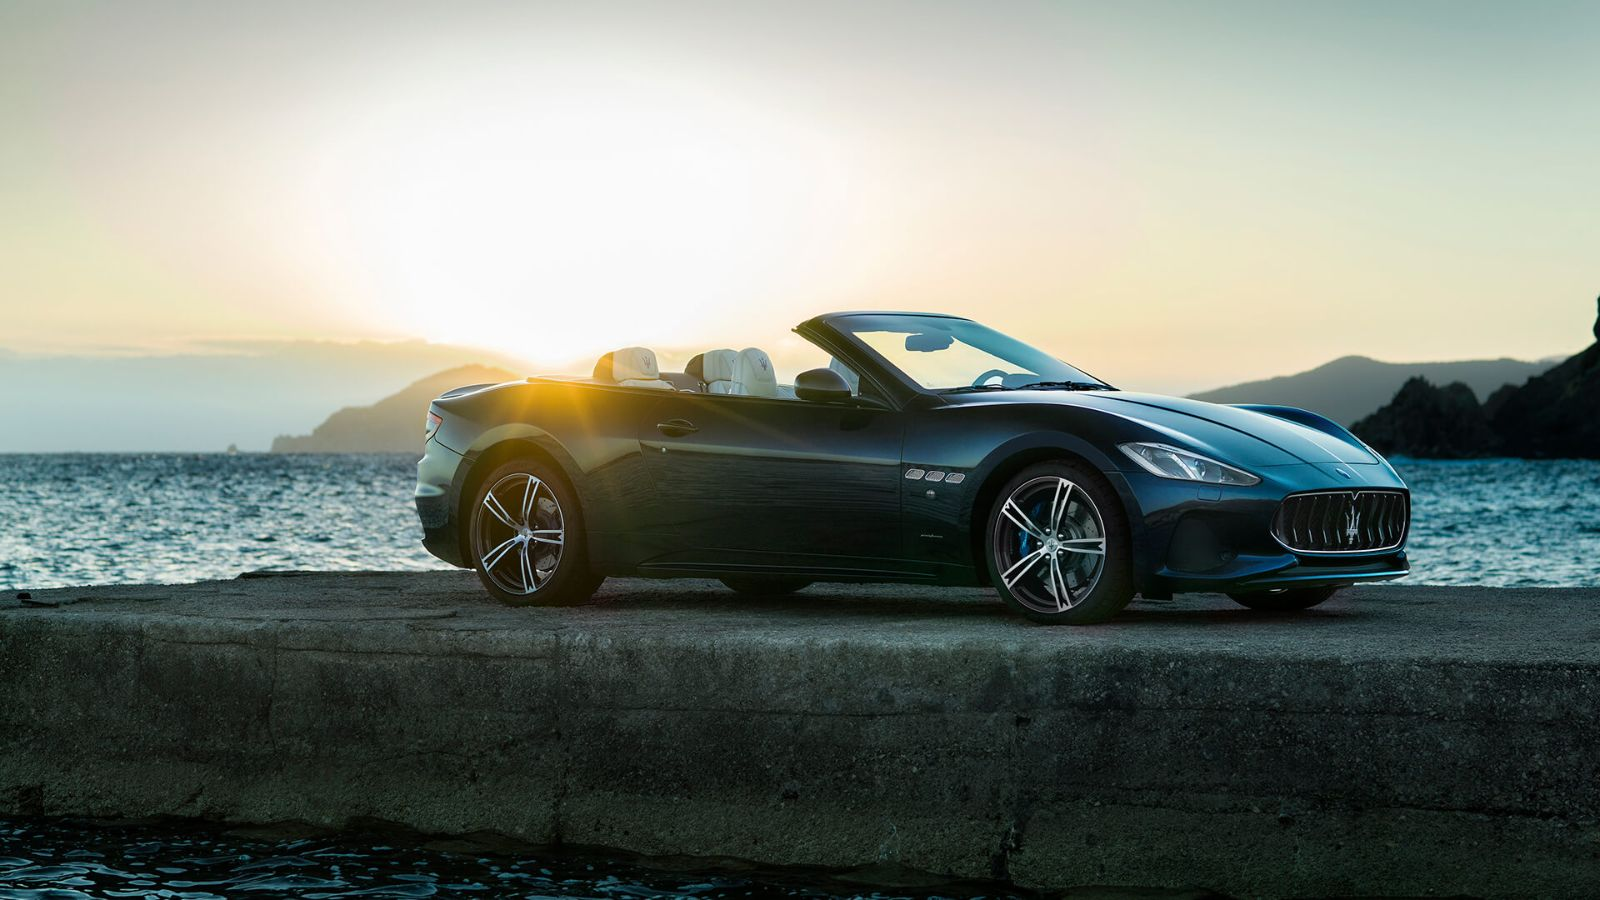 Black Gran Turismo Convertible - side view - seaside landscape